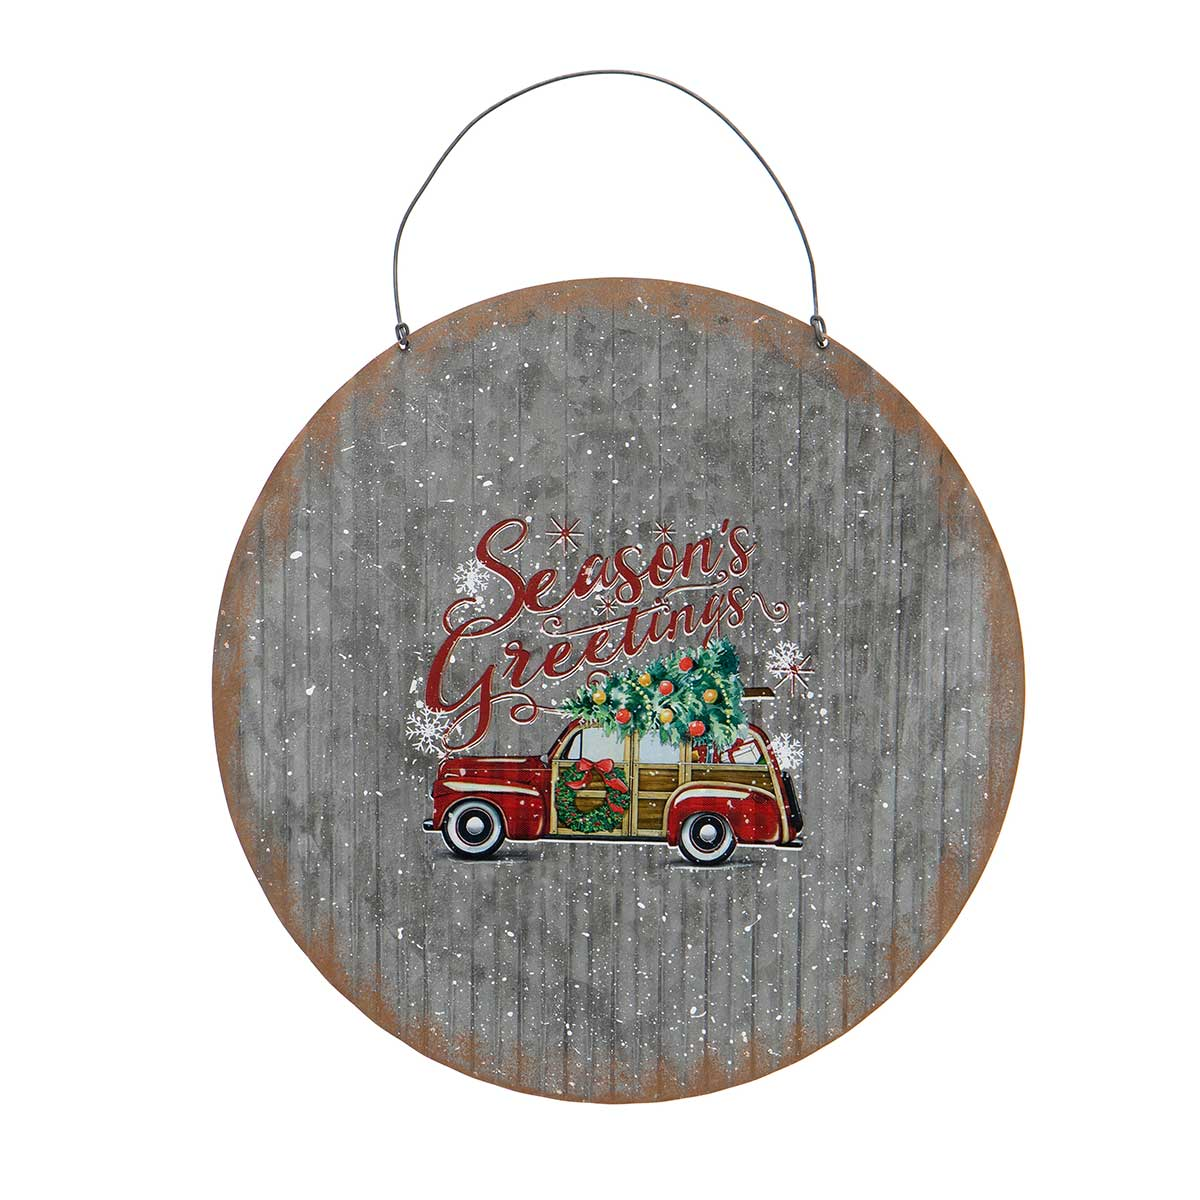 METAL CAR ROUND SIGN ORNAMENT